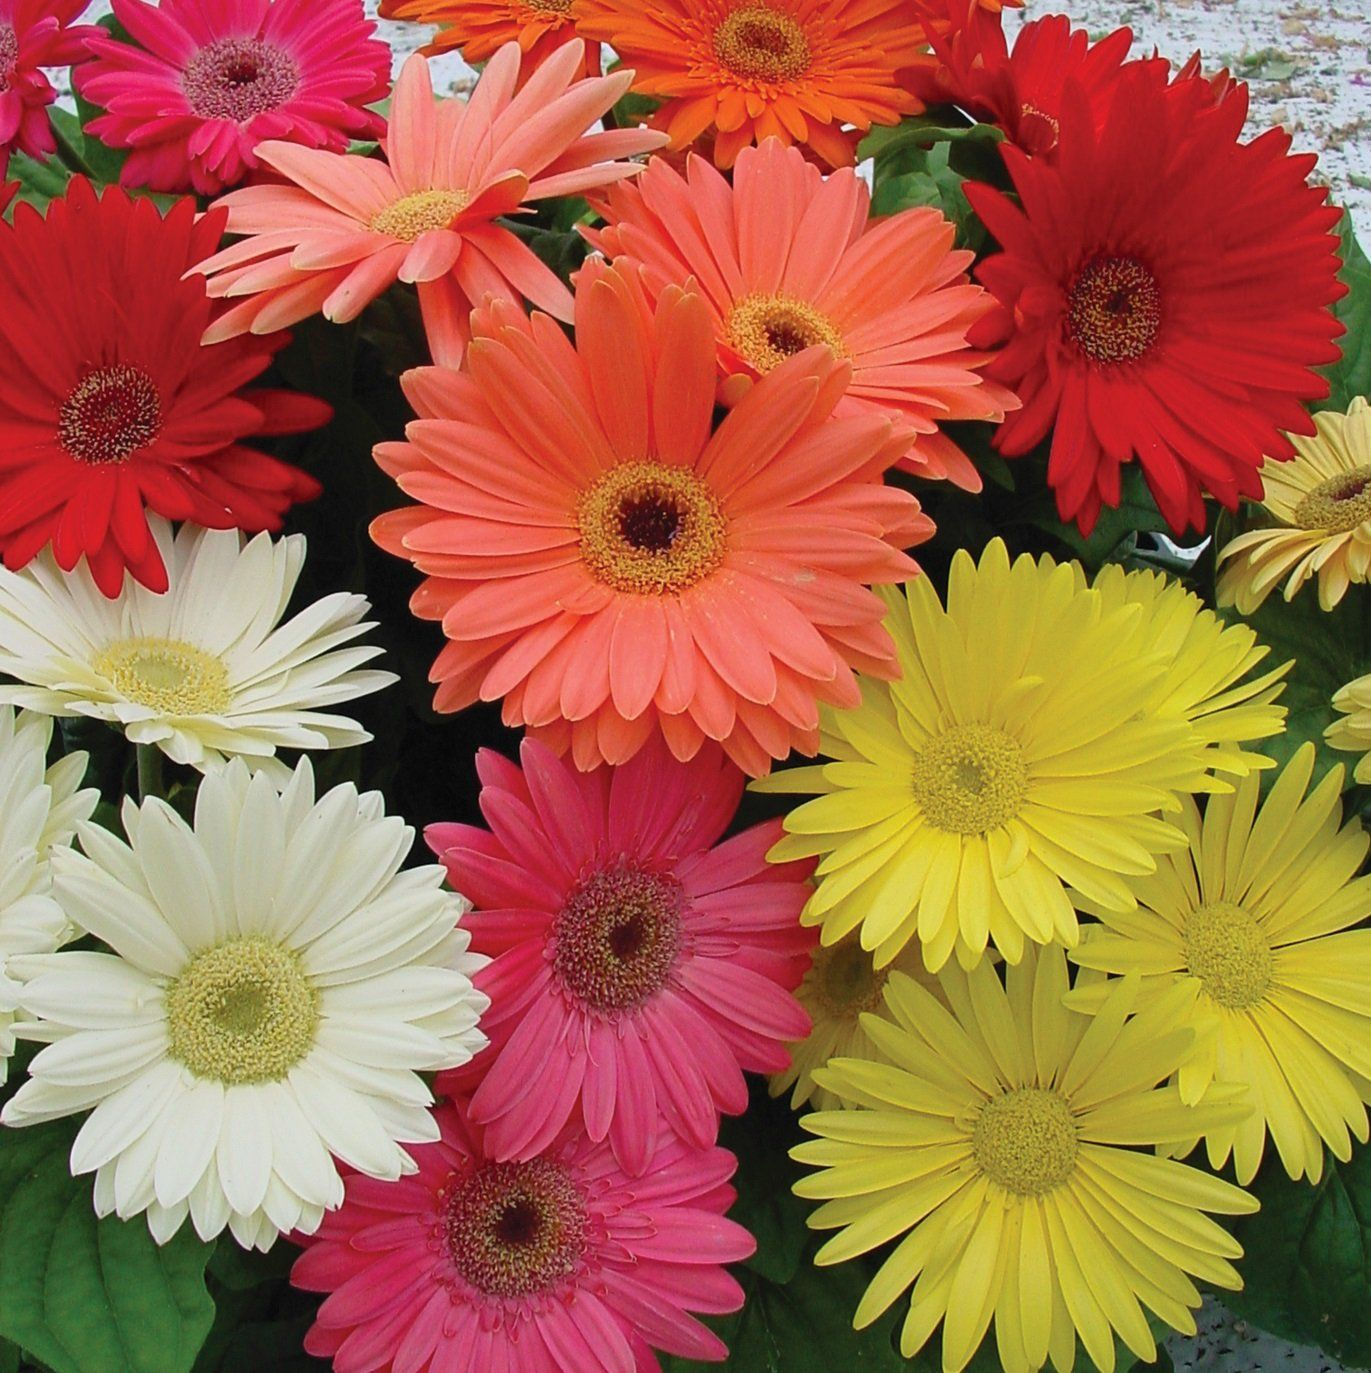 Gerbera Seeds Gerbera Daisy Flower Seed Mix In 2020 Gerbera Flower Flower Seeds Daisy Flower